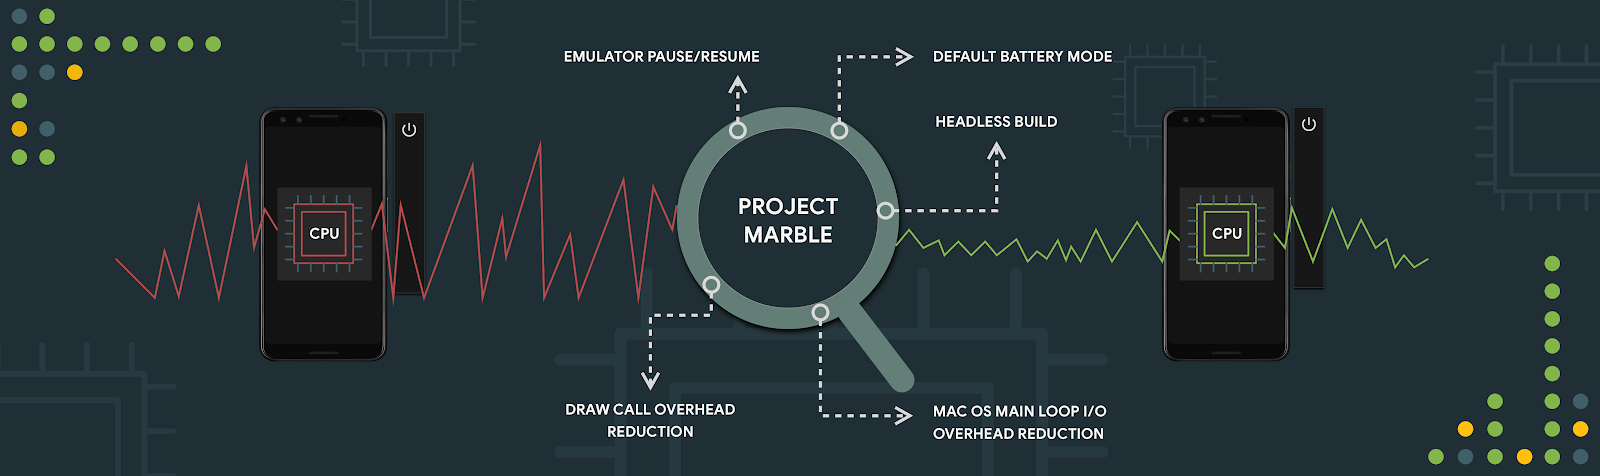 Android Emulator : Project Marble Improvements - Android Developers